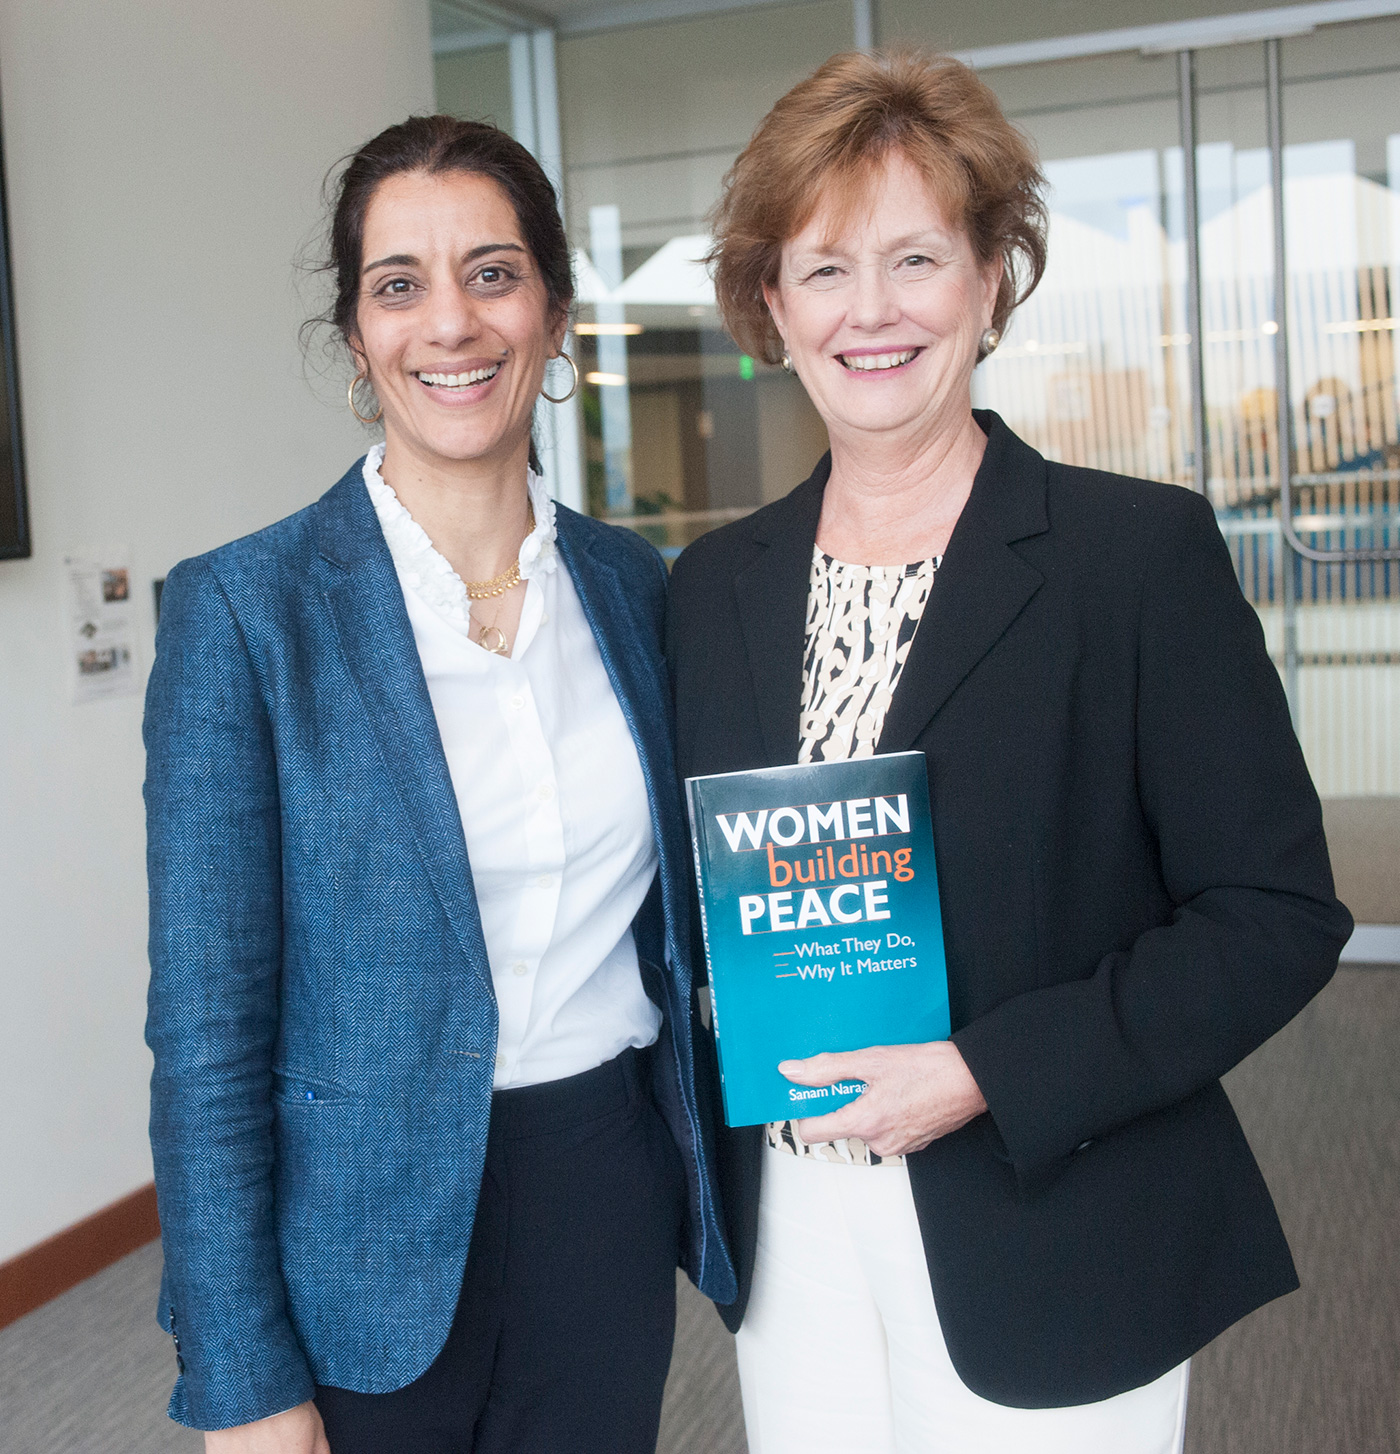 Chancellor Moloney welcomed Sanam Naraghi Anderlini, the 2016 Greeley Scholar for Peace Studies, to campus.